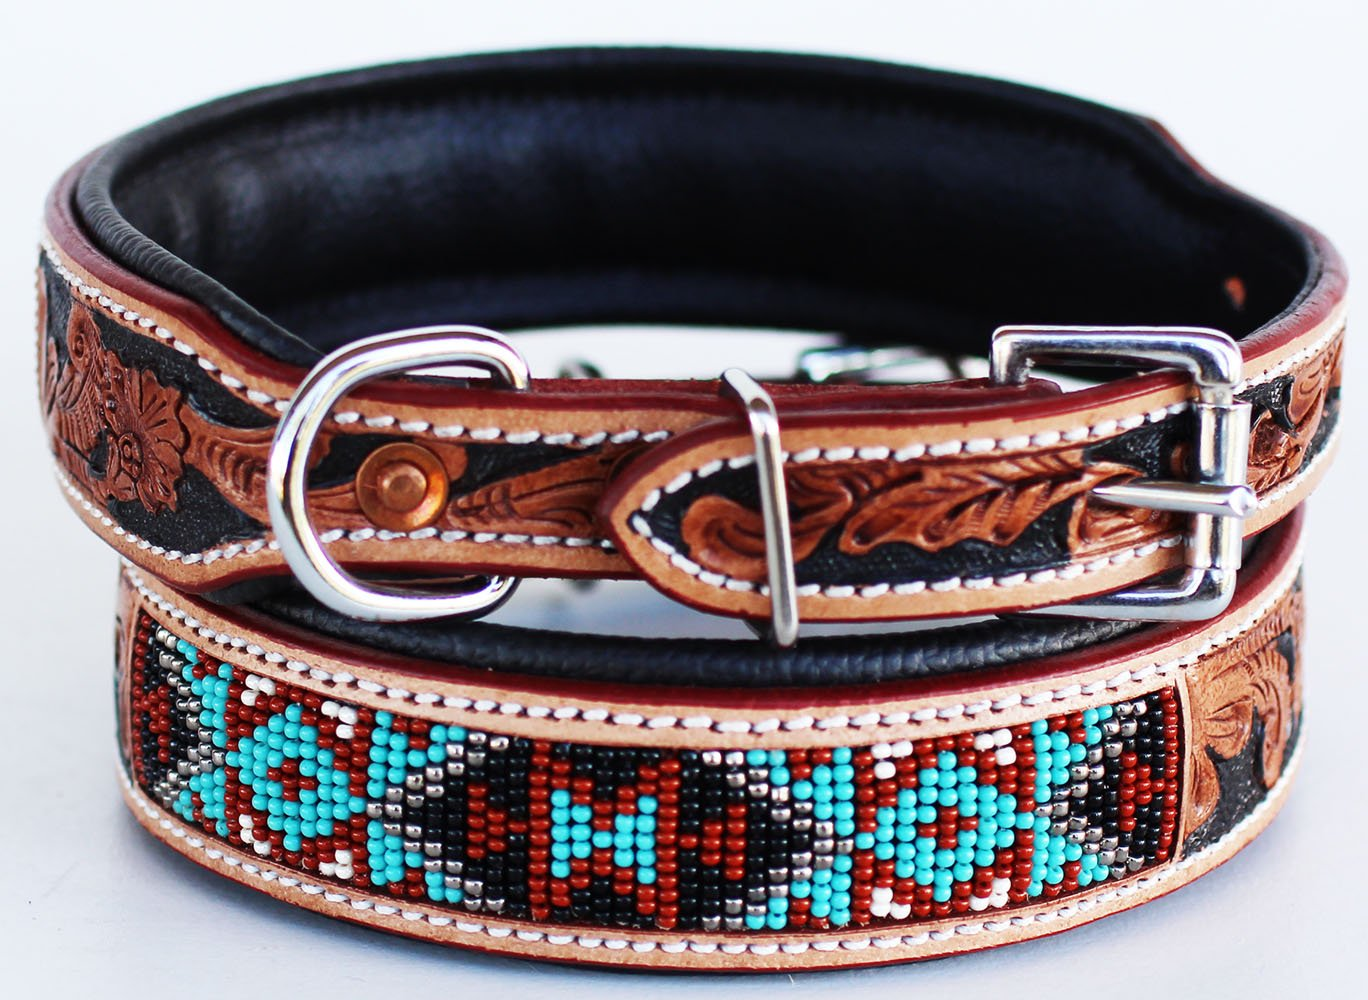 Large 21''- 25'' PRORIDER Dog Puppy Collar Cow Leather Adjustable Padded Canine 6064TL